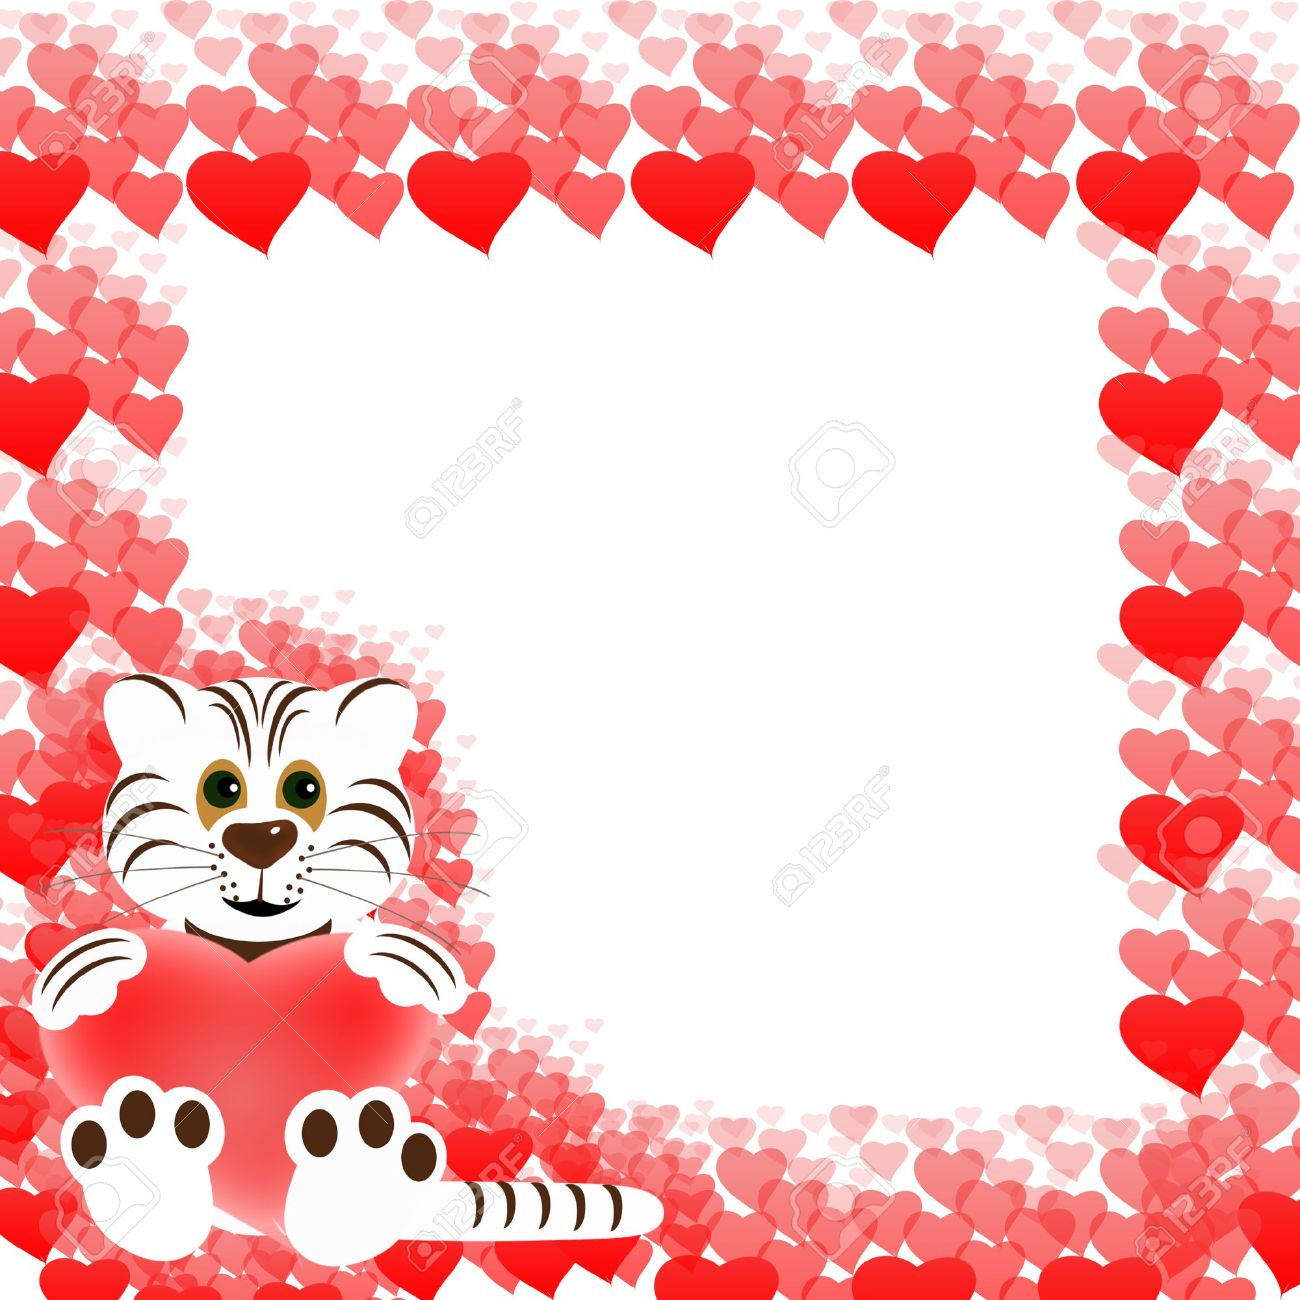 Valentines Frame Stock Photo, Picture And Royalty Free Image. Image ...